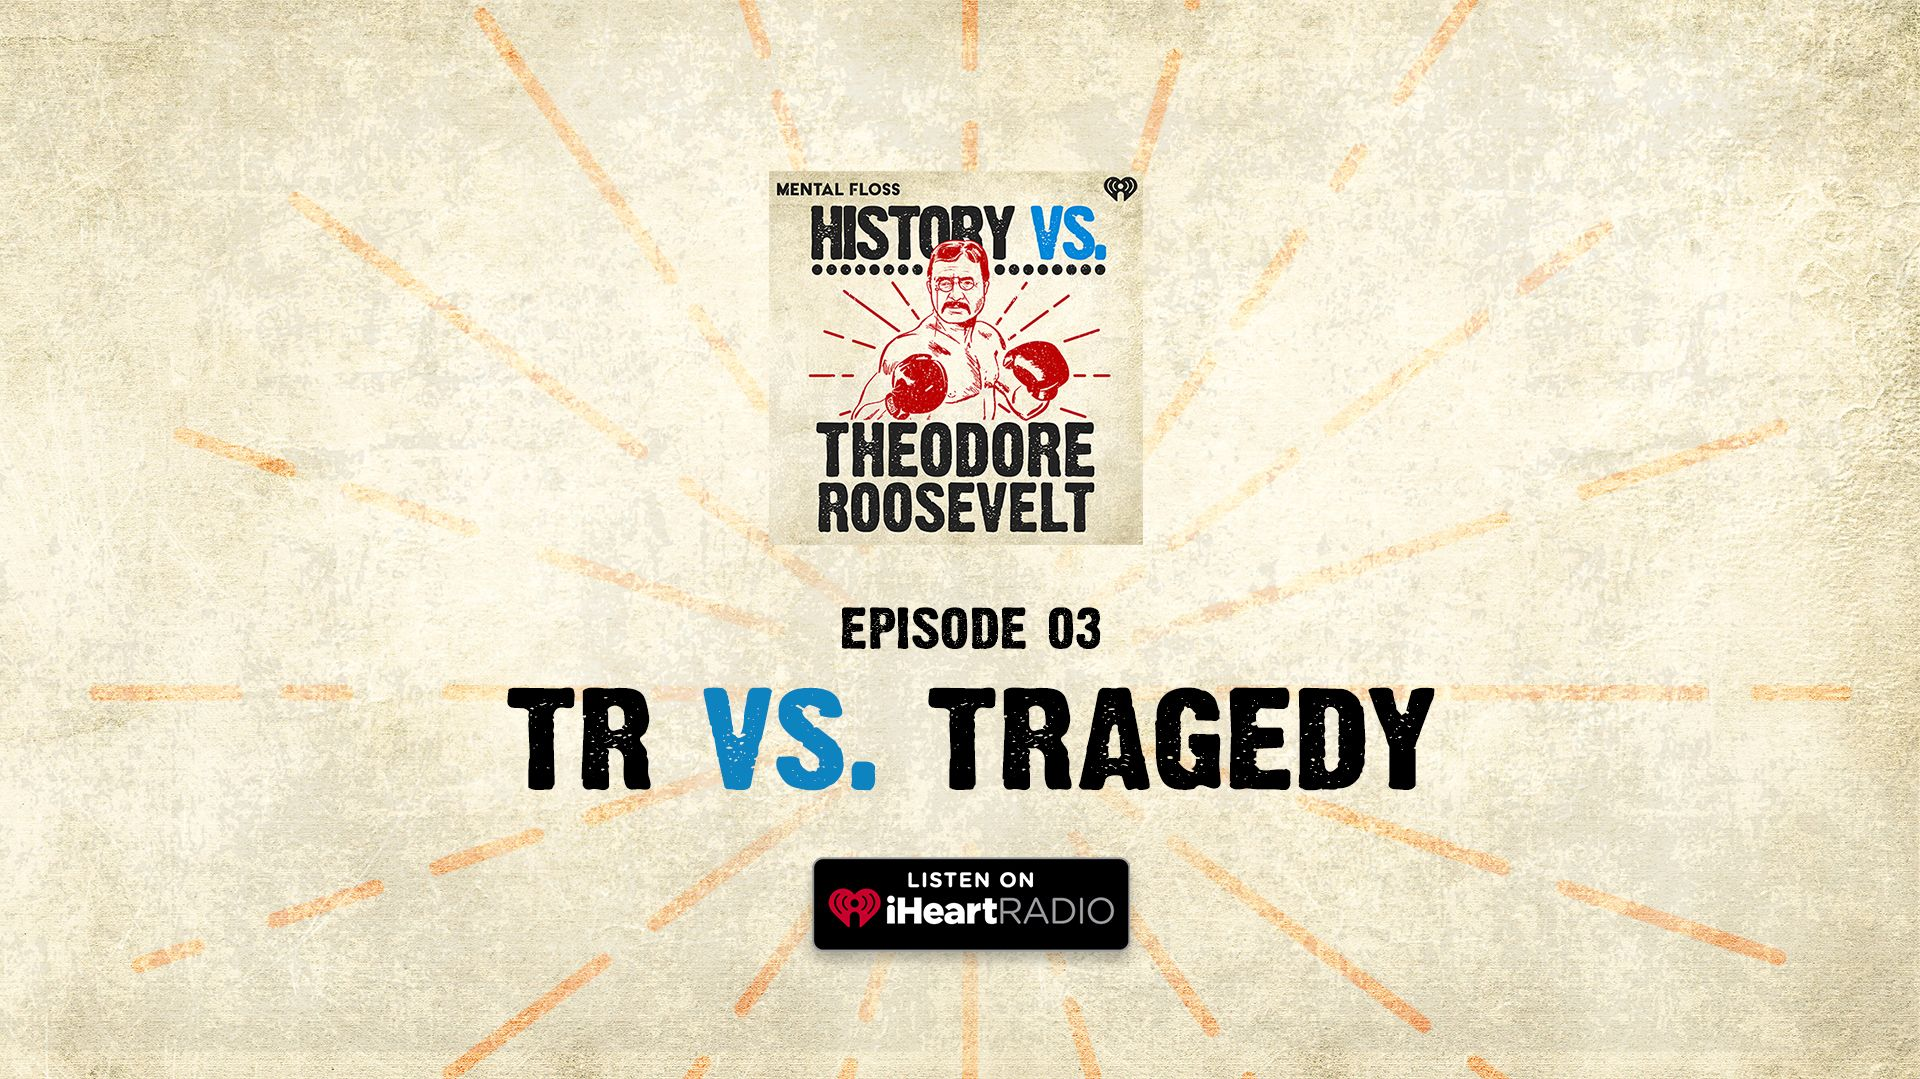 History Vs. Episode 3: Theodore Roosevelt Vs. Tragedy